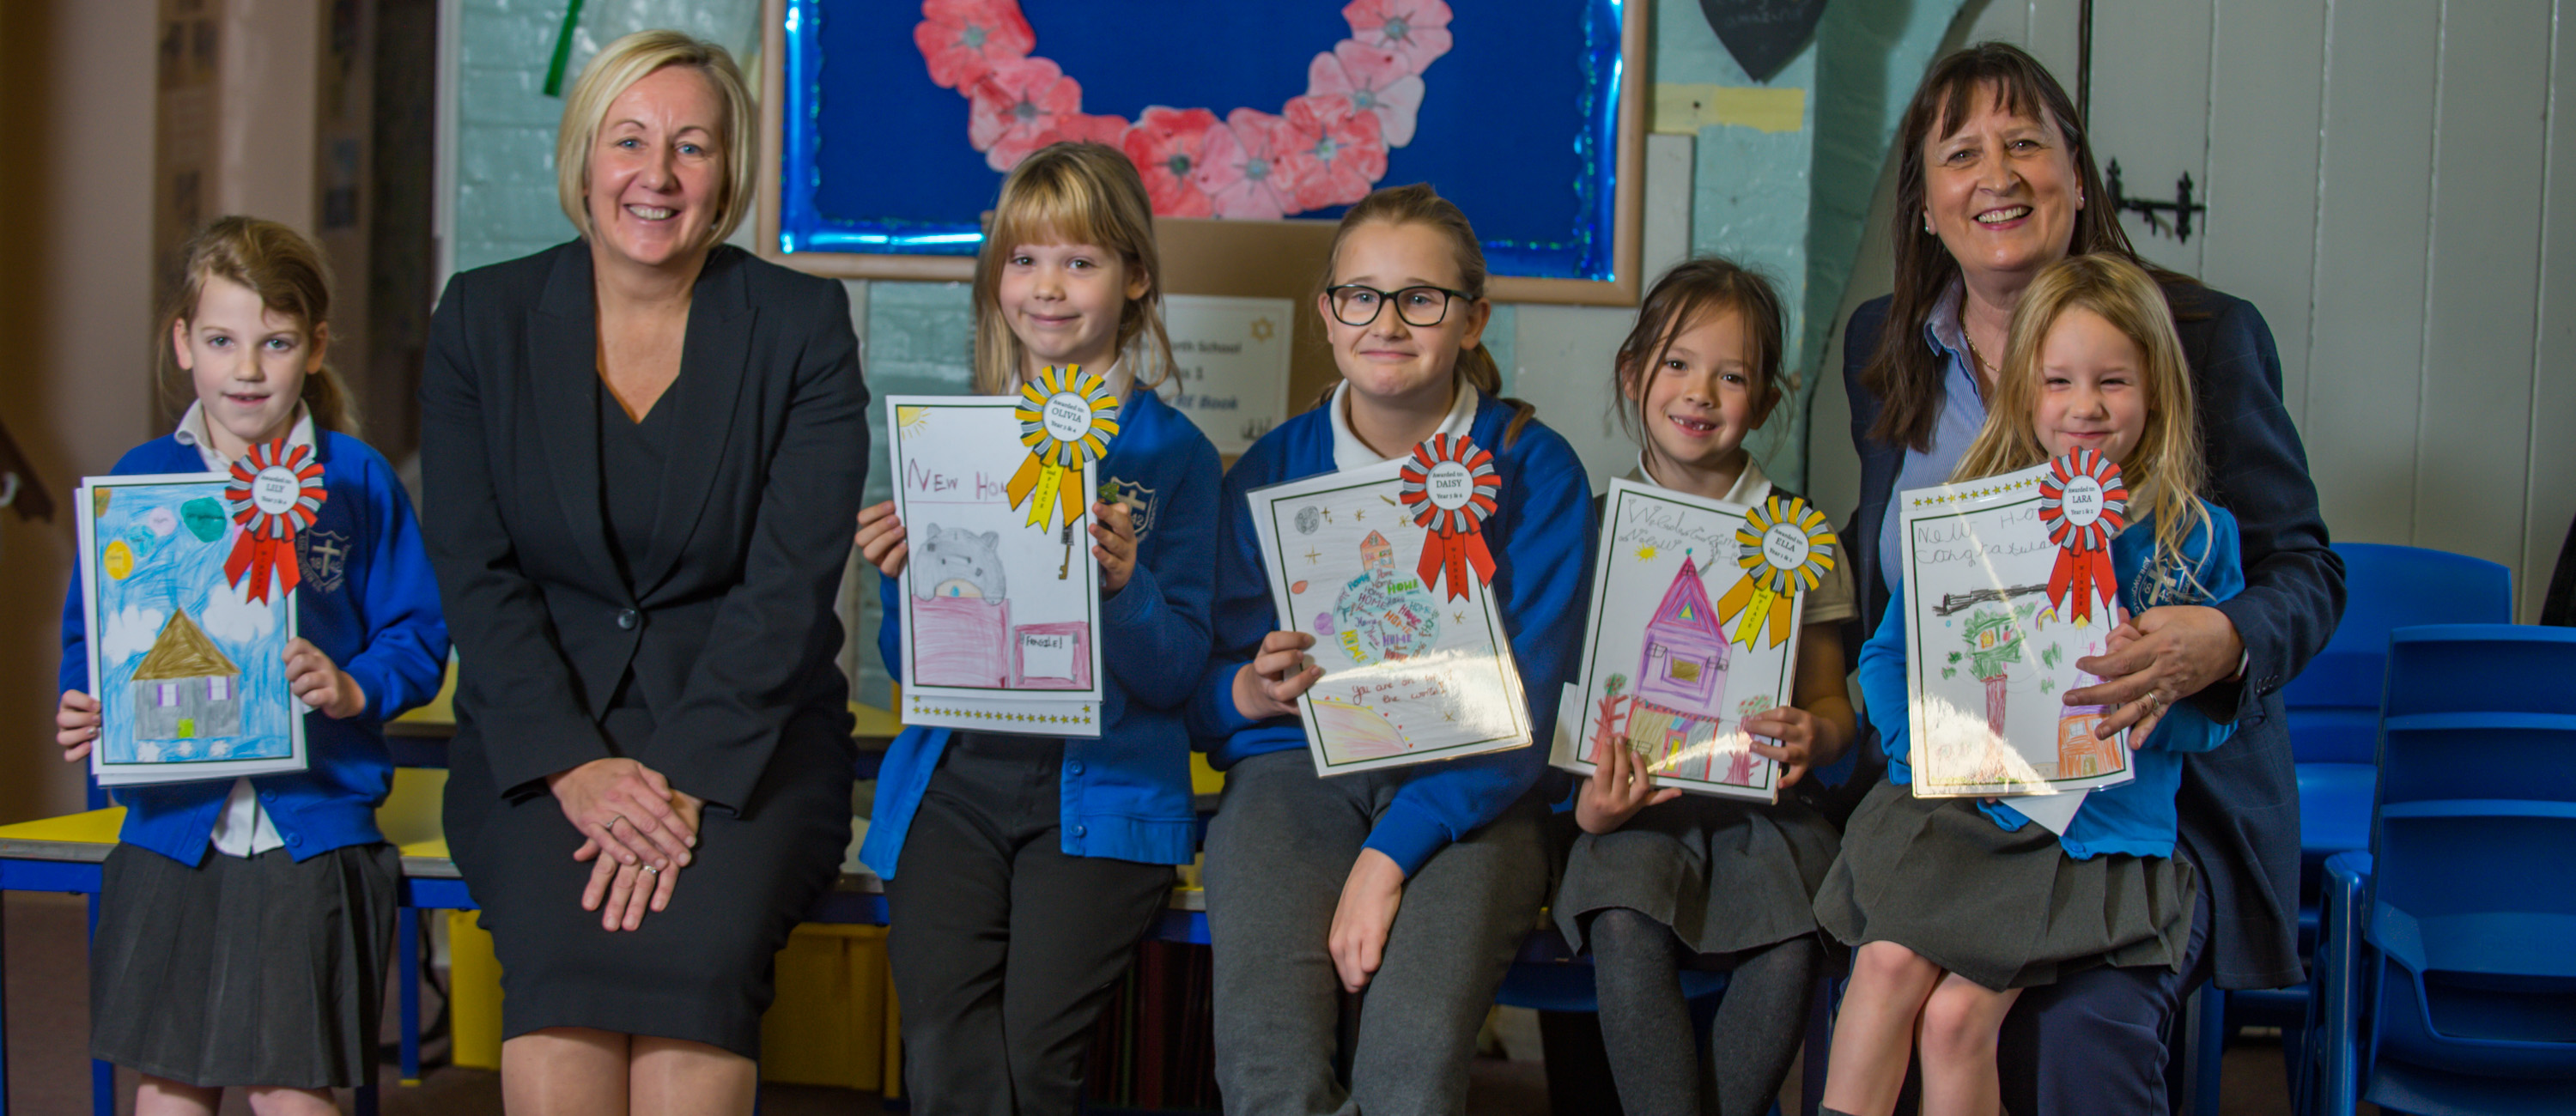 Ashleworth Primary offers new residents a warm welcome